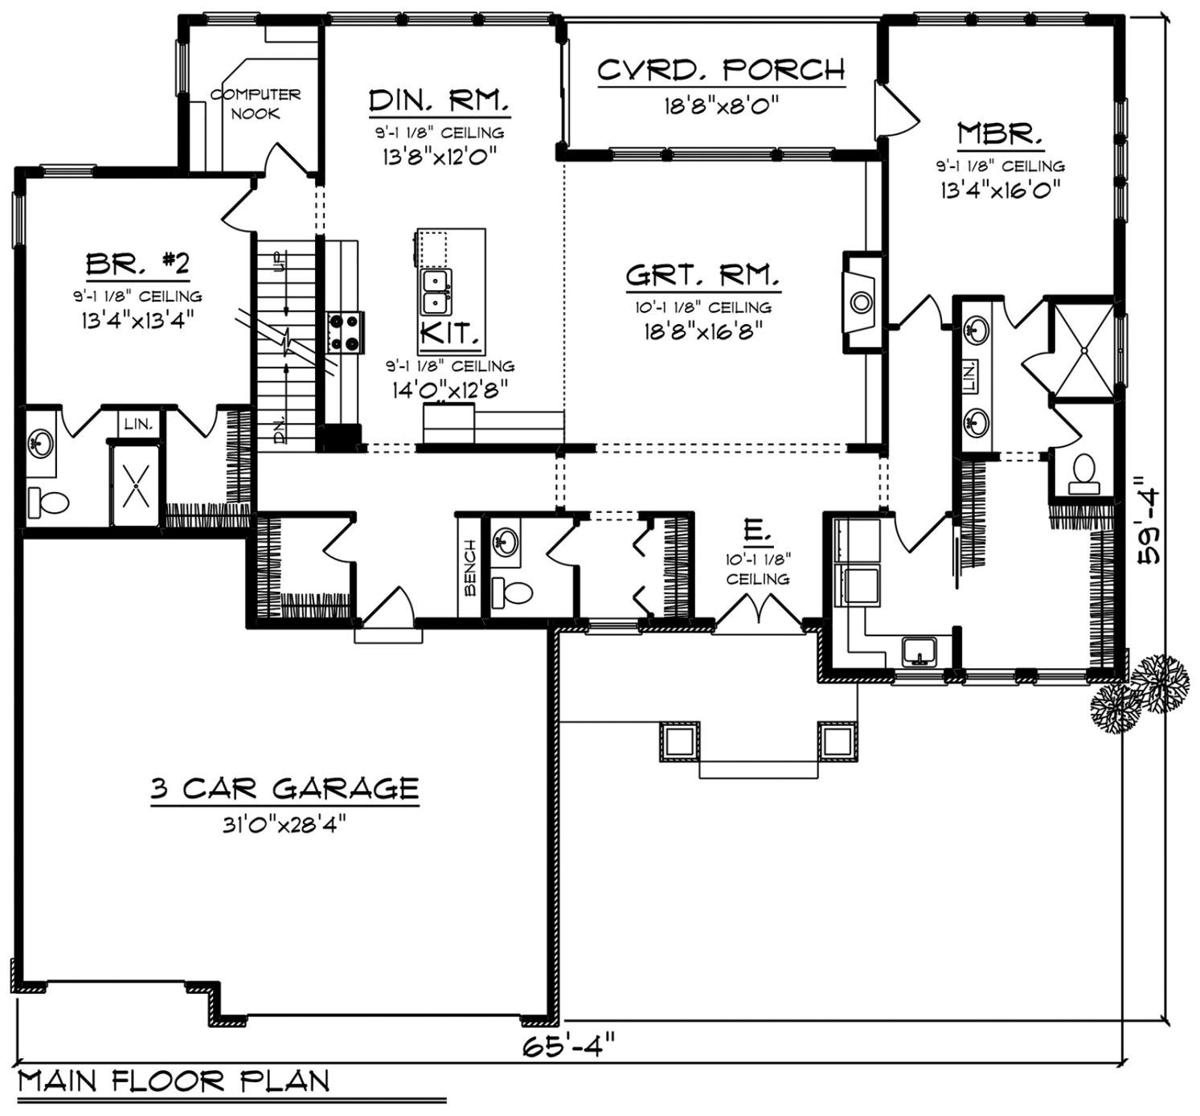 House of the Week: Get ready for the holidays with this ... on ranch house plans, ranch home interior, ranch home floor designs, ranch home construction plans, simple home floor plans, ranch home elevations, ranch home floor plans, ranch home design plans, ranch home pricing, ranch home drawings, simple one floor house plans, simple square house floor plans, ranch blueprints, simple ranch floor plans,